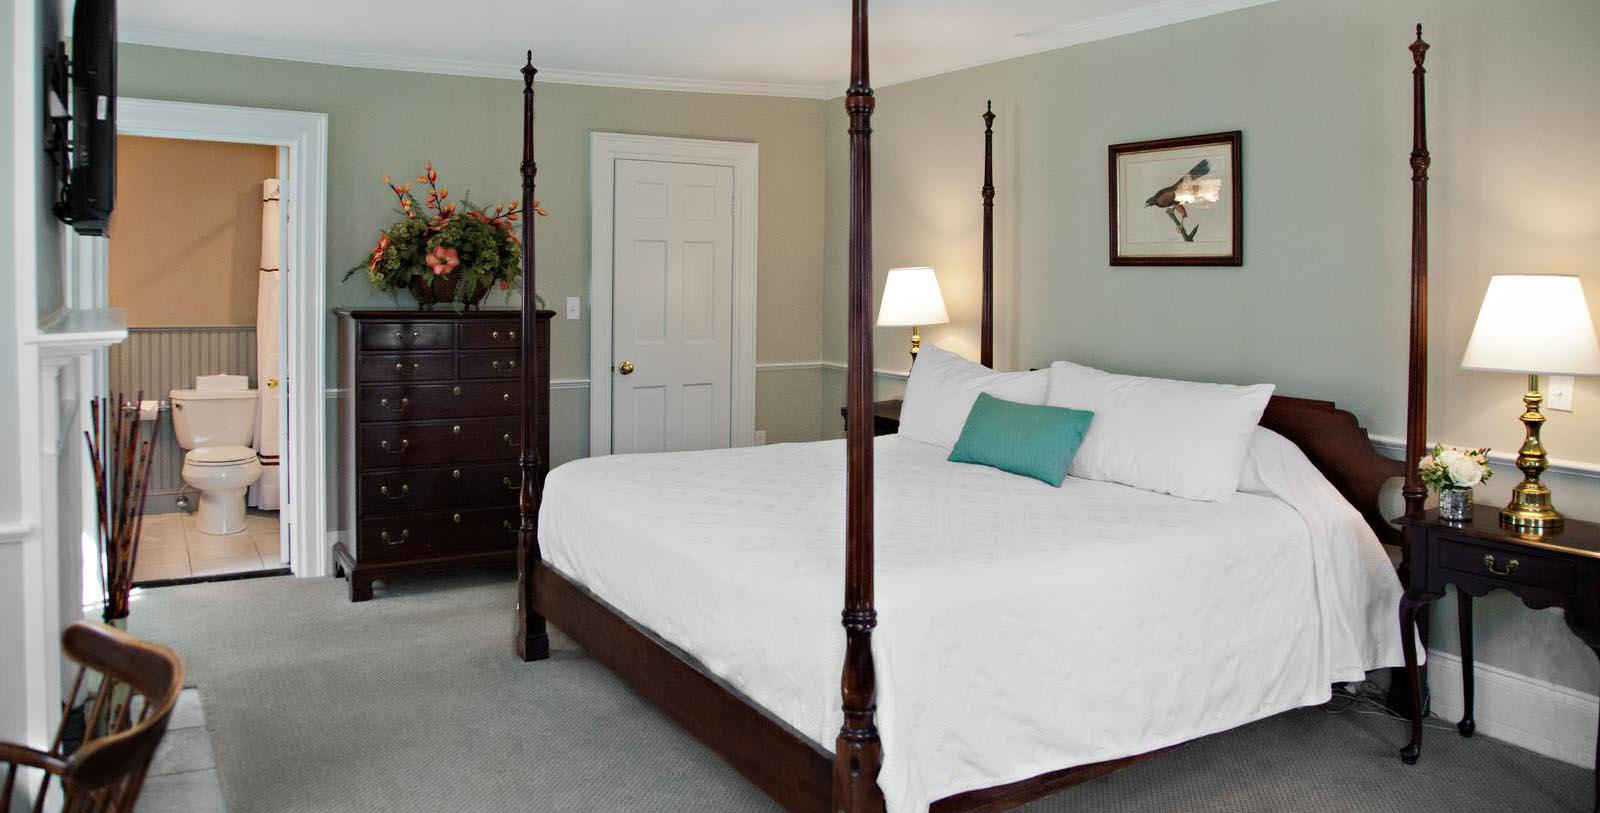 Image of Guestroom at Concord's Colonial Inn, 1716, Member of Historic Hotels of America, in Concord, Massachusetts Location Map